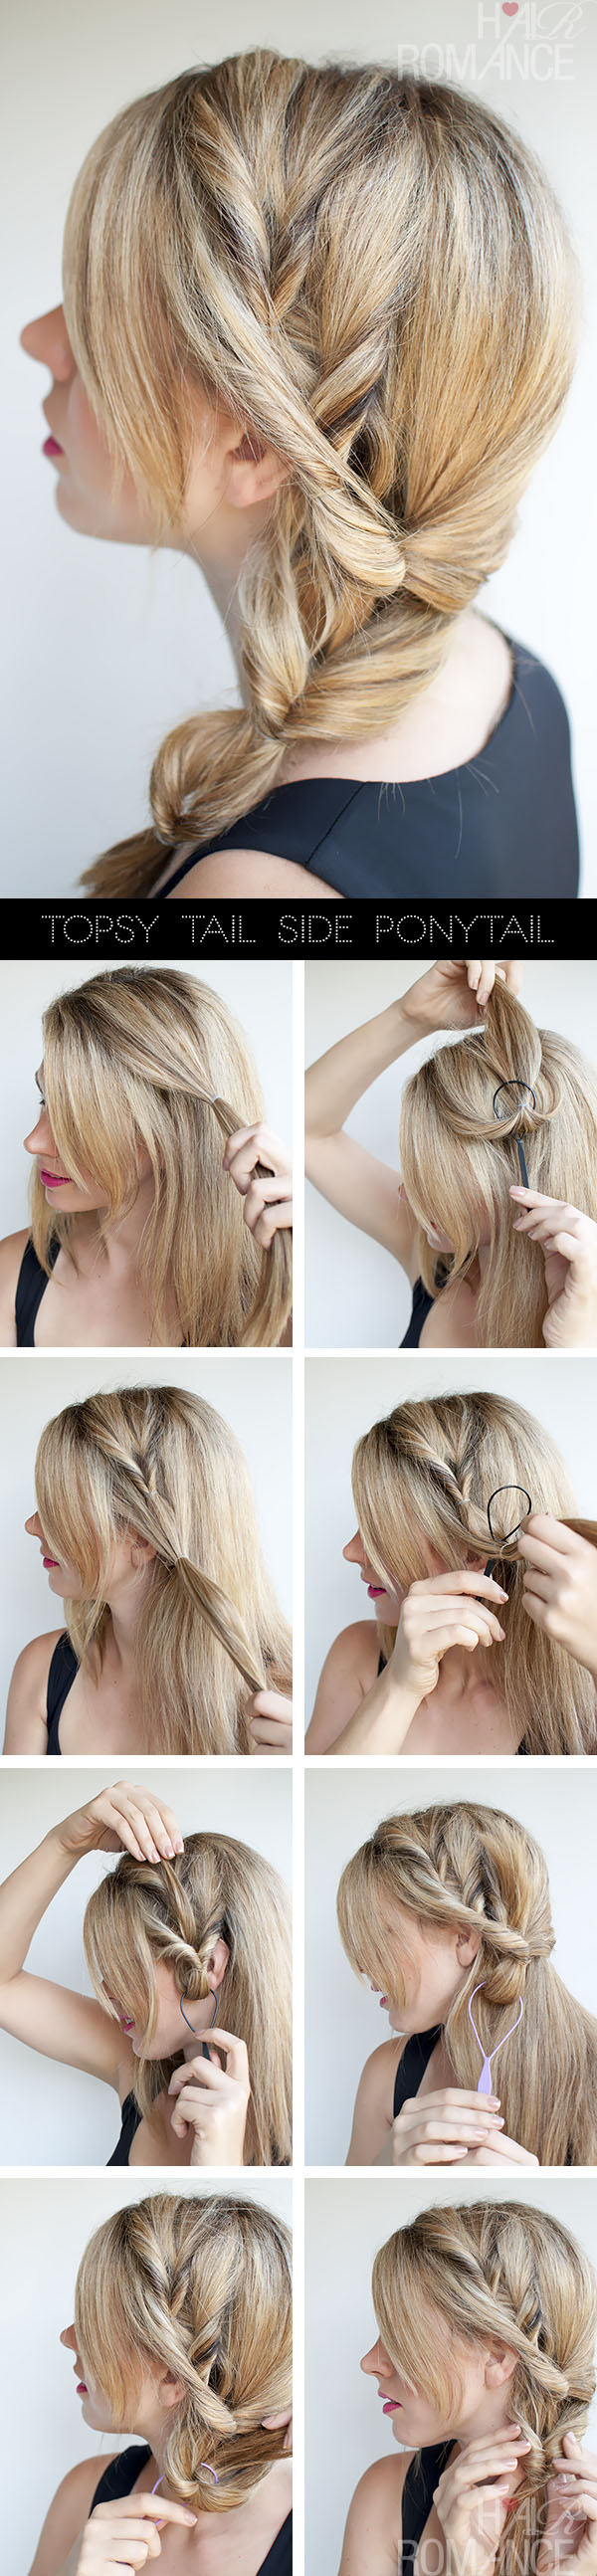 Hair Romance - Topsy Tail Ponytail tutorial - the no-braid side braid